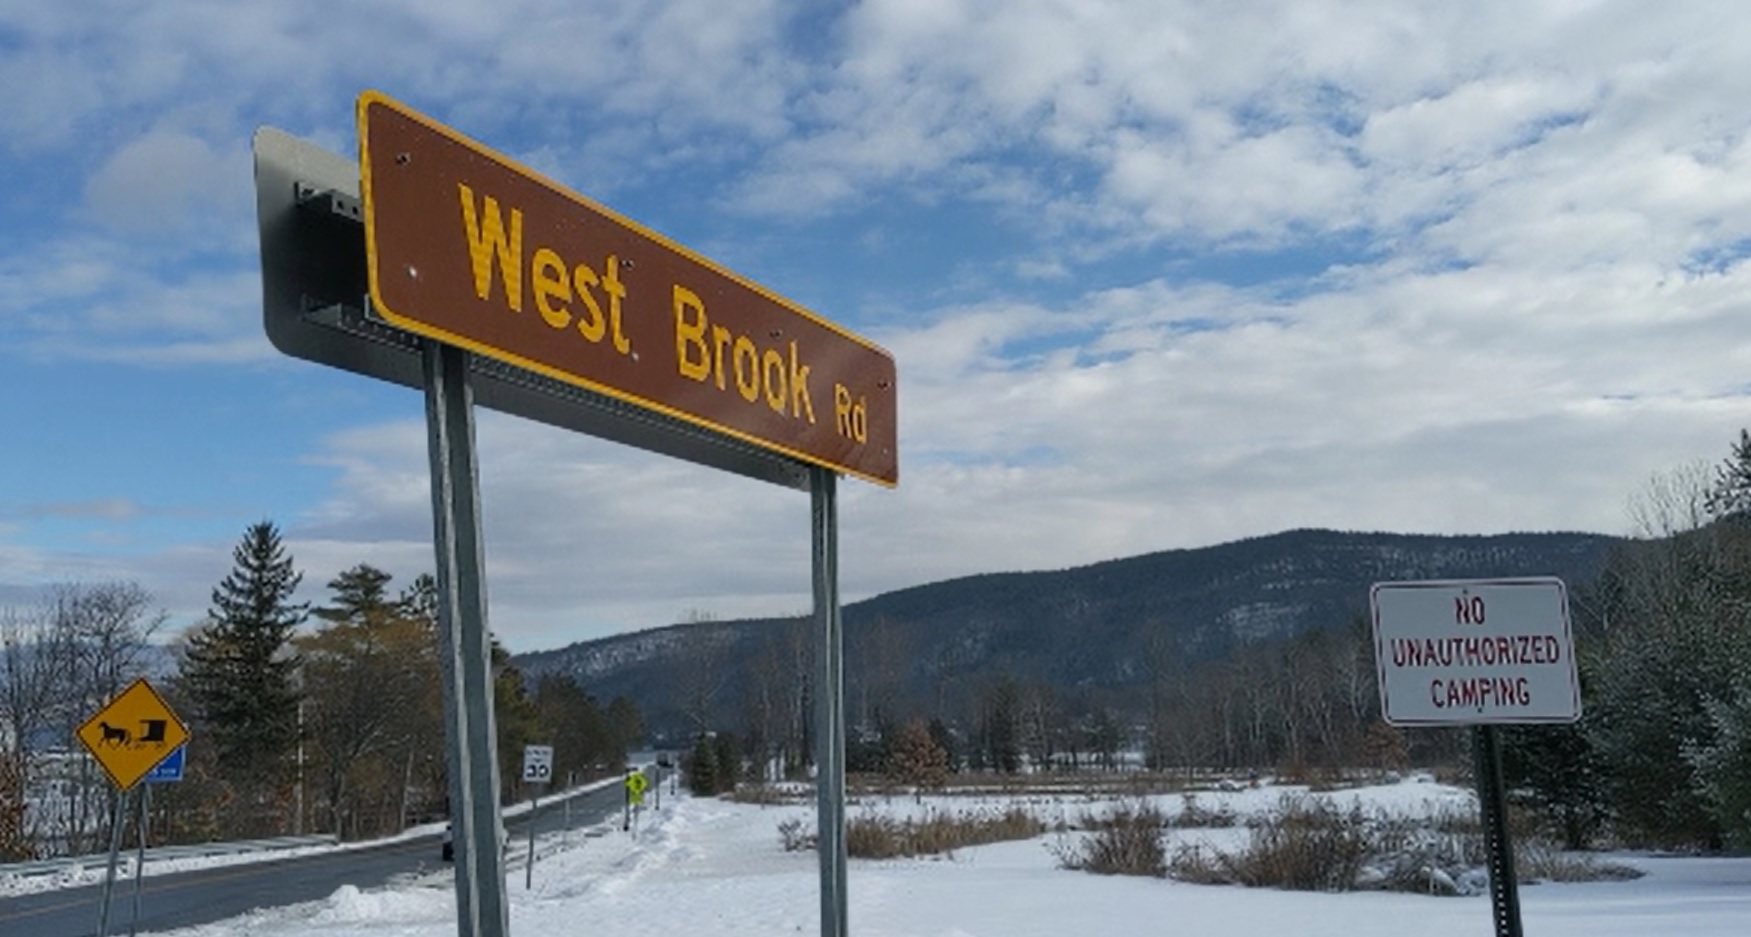 west brook road sign lake george